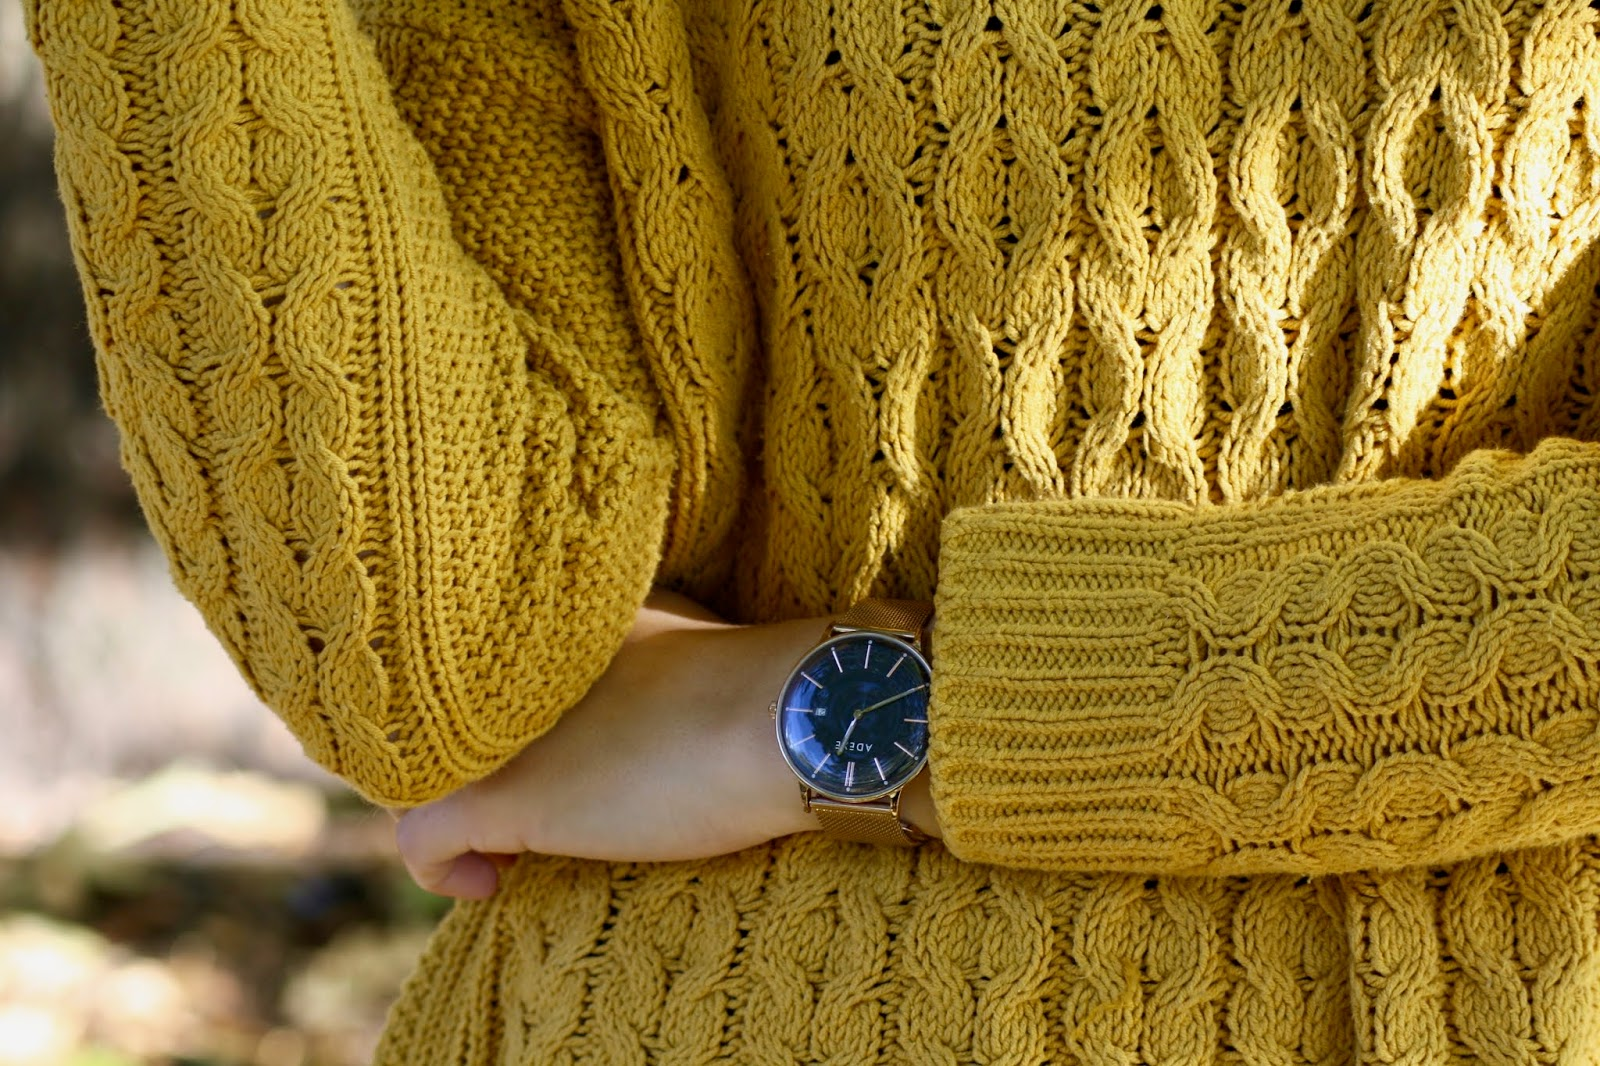 a close up of abbey's torso, wearing a mustard knit jumper, showing a gold watch on her wrist